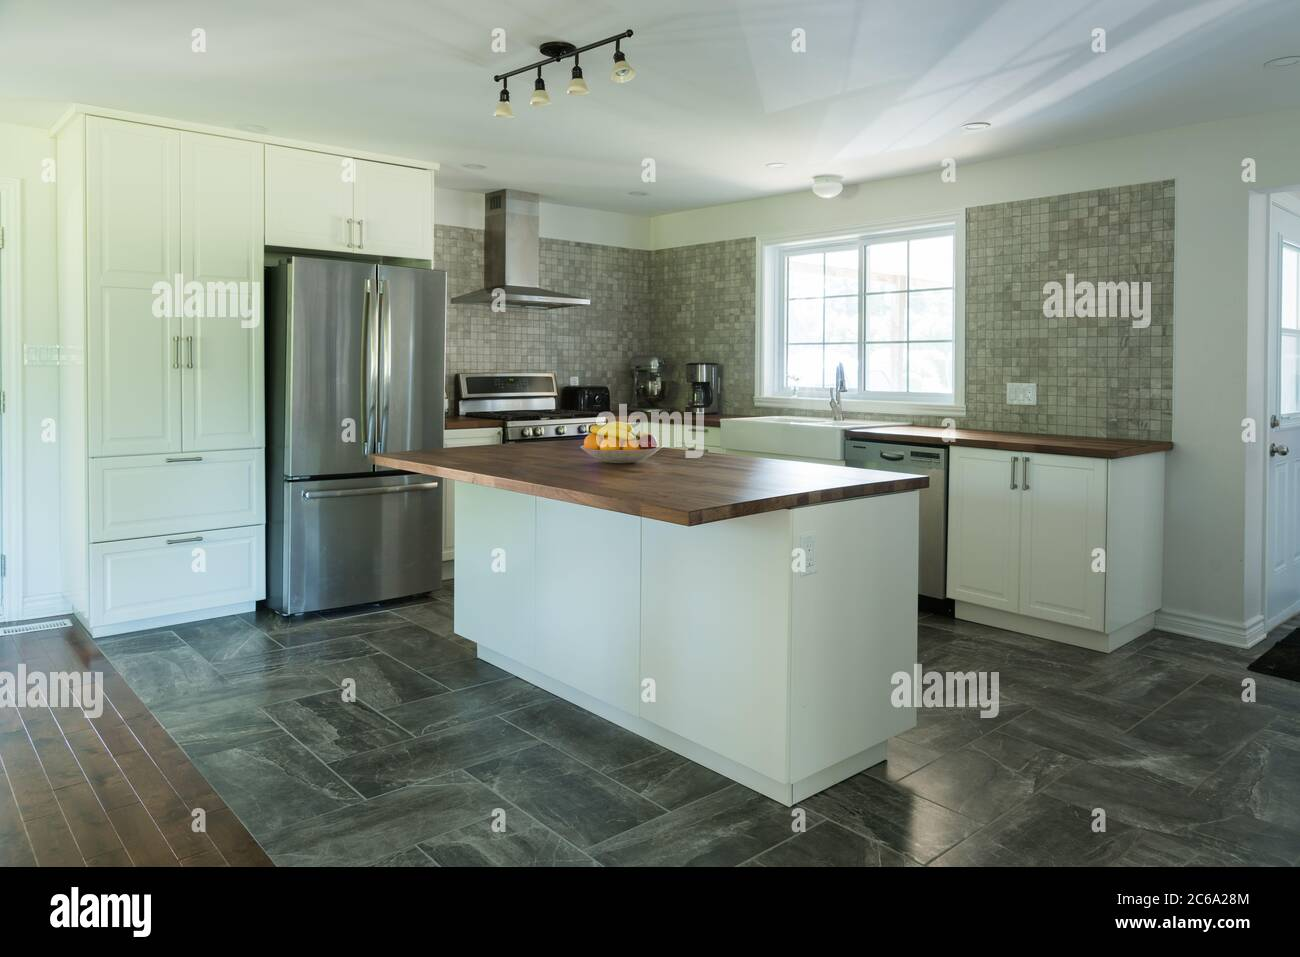 New Grey And White Kitchen With Marble Tiles Appliances And Timber Bench Tops Stock Photo Alamy